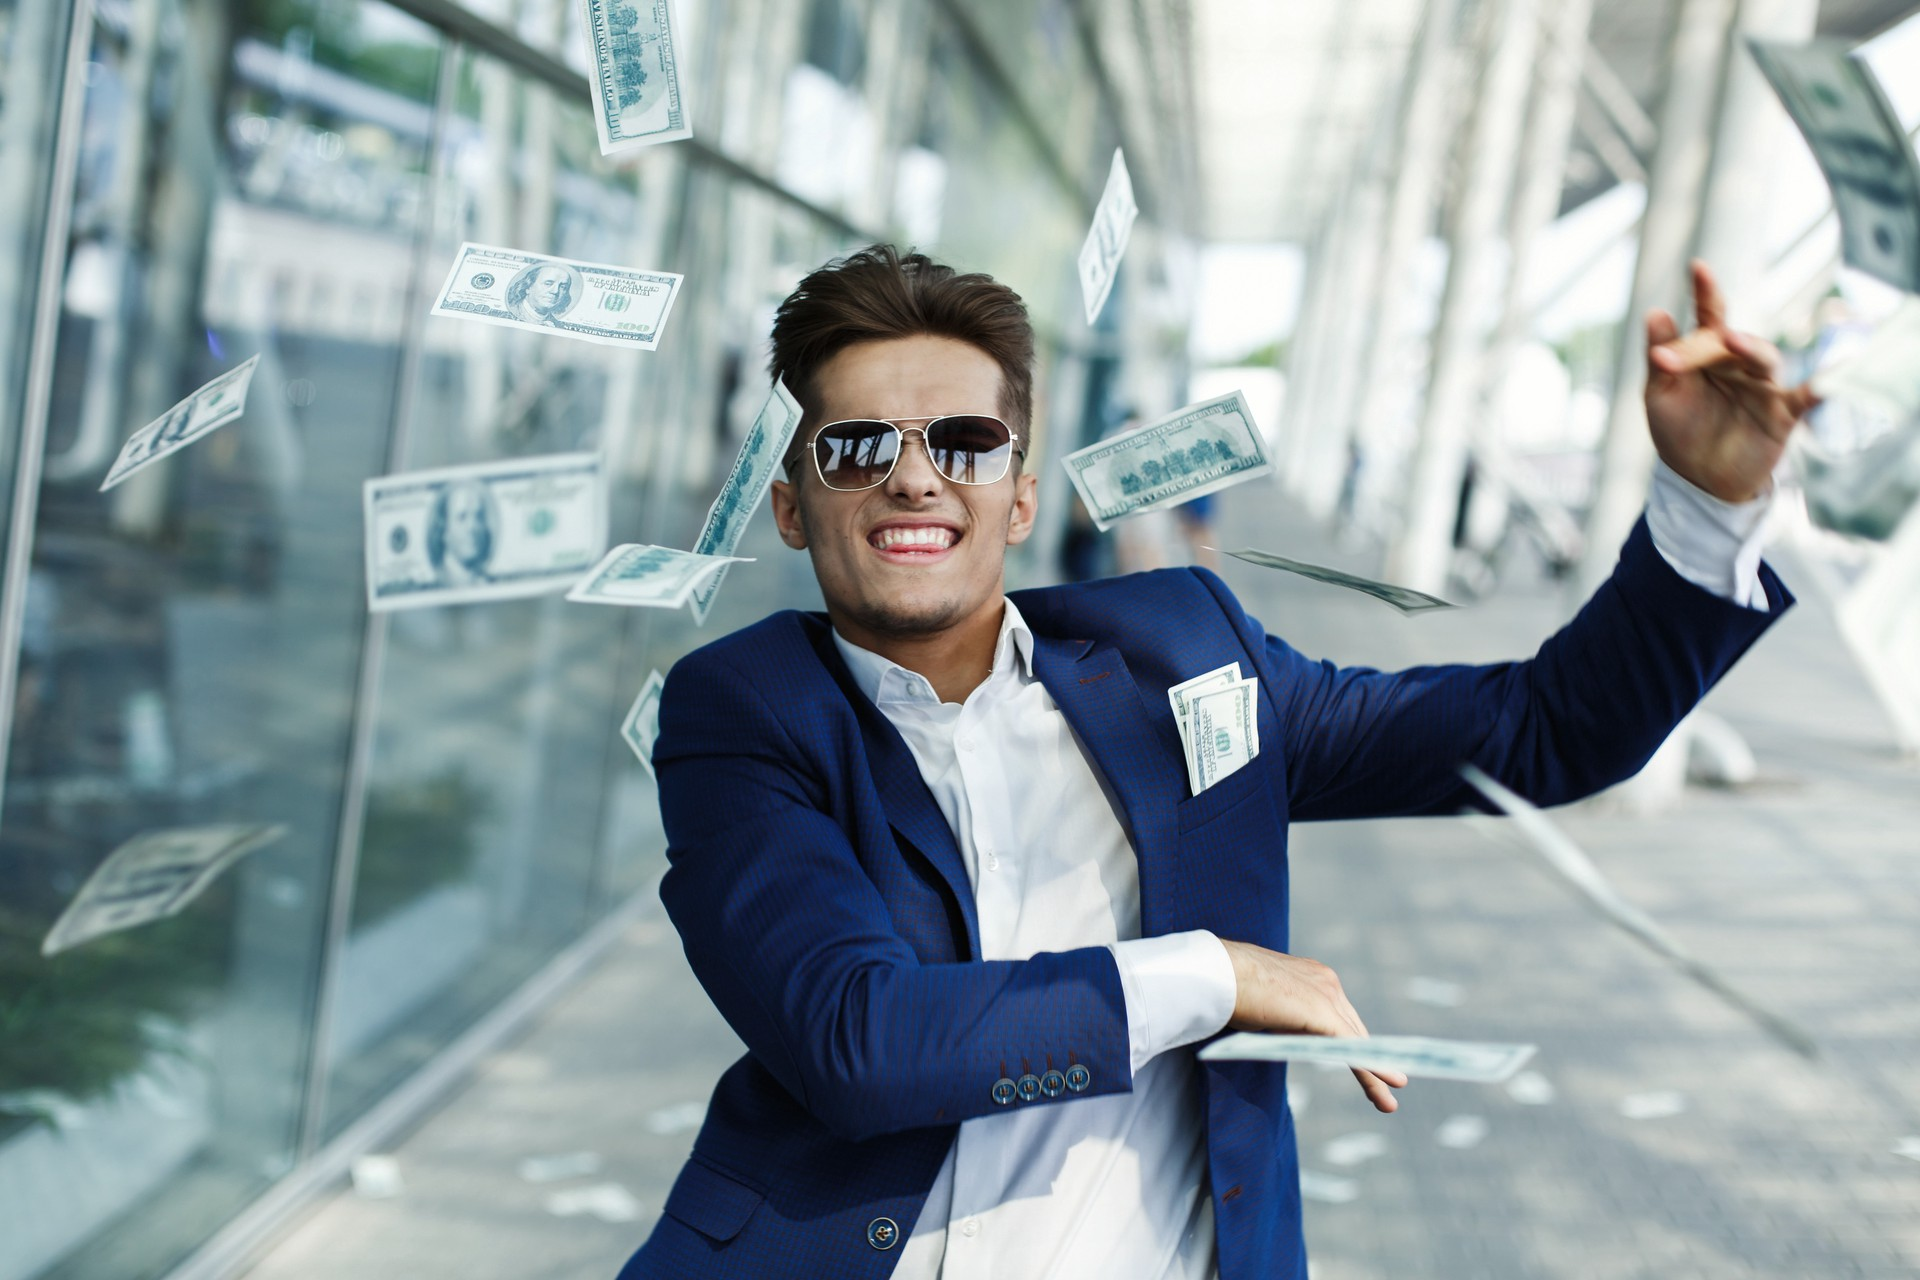 Excited young rich man walking on the street while throwing money away